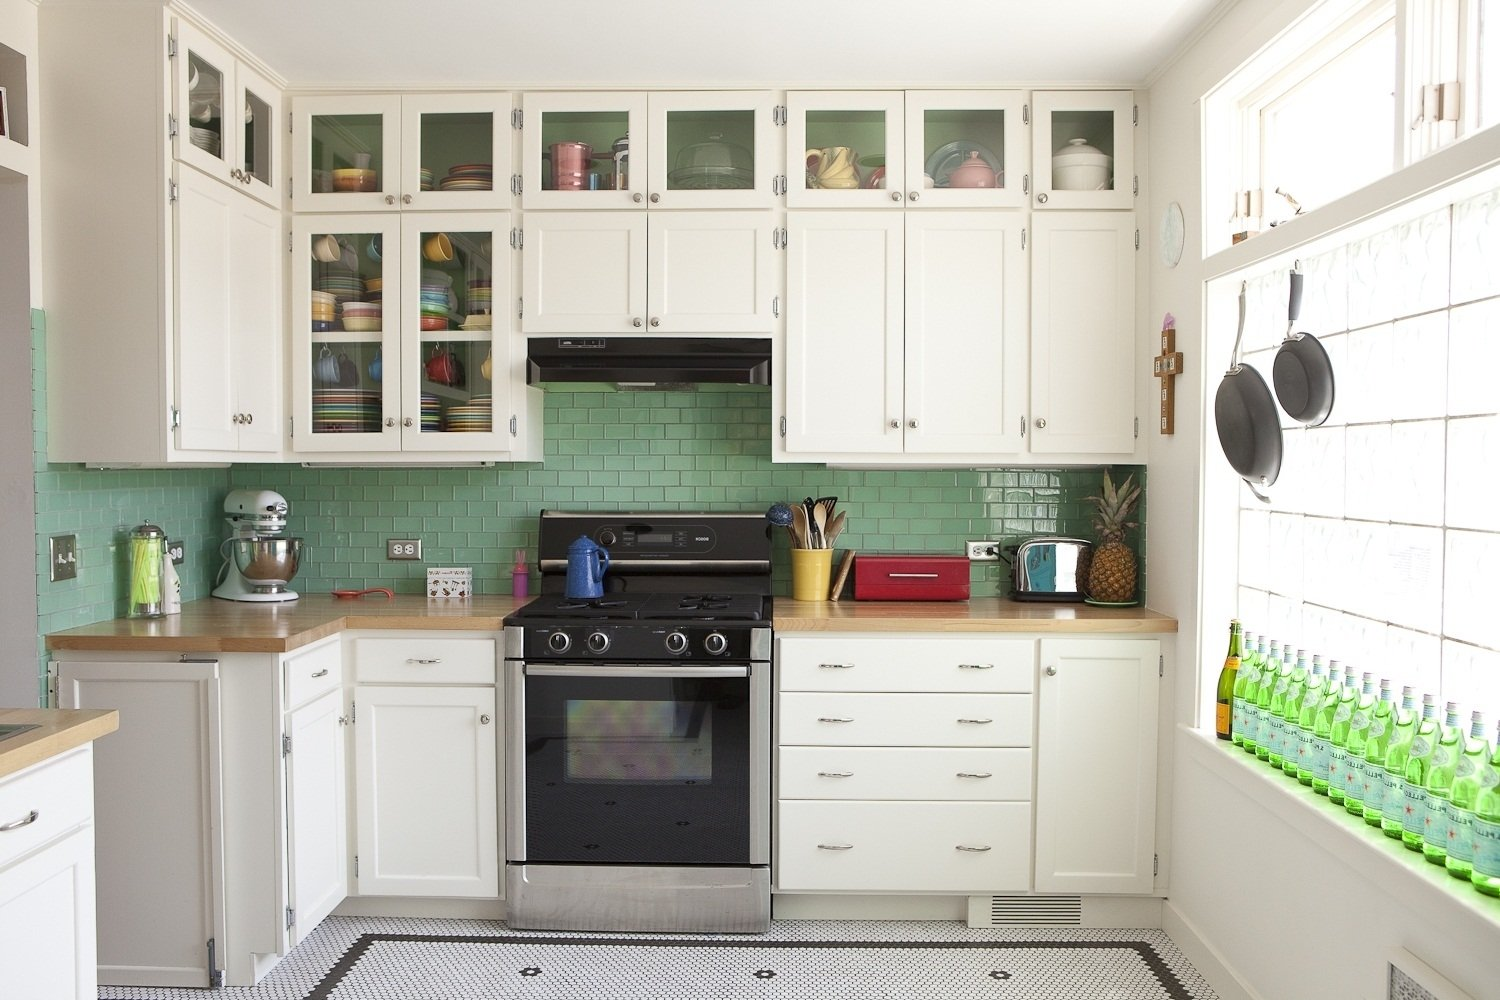 10 Best Small Kitchen Ideas On A Budget marvelous on a budget kitchen ideas on house remodel plan with 2020